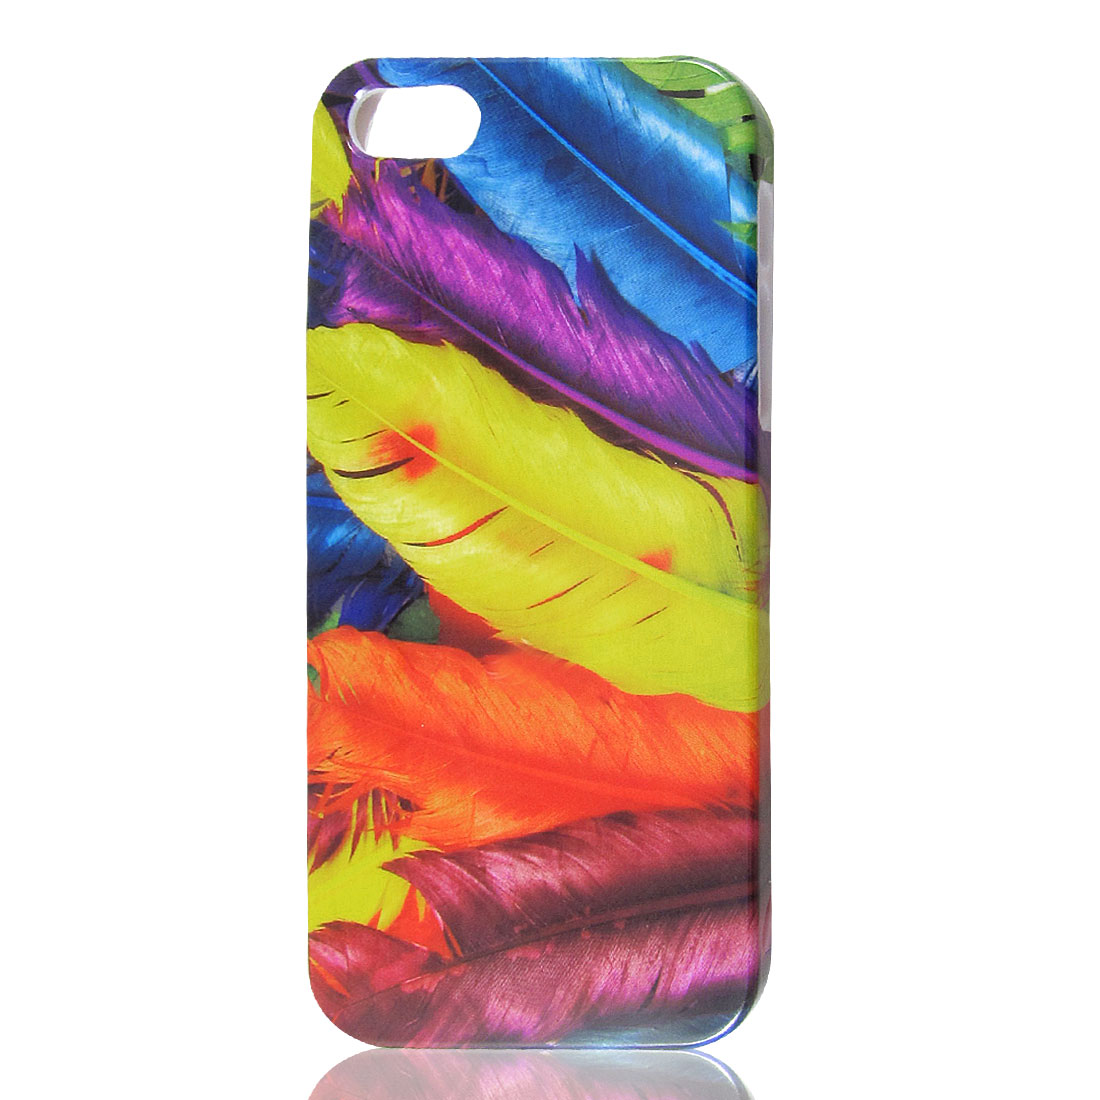 Assorted Color Feather Pattern Hard Back Cover Case for iPhone 5 5G 5th